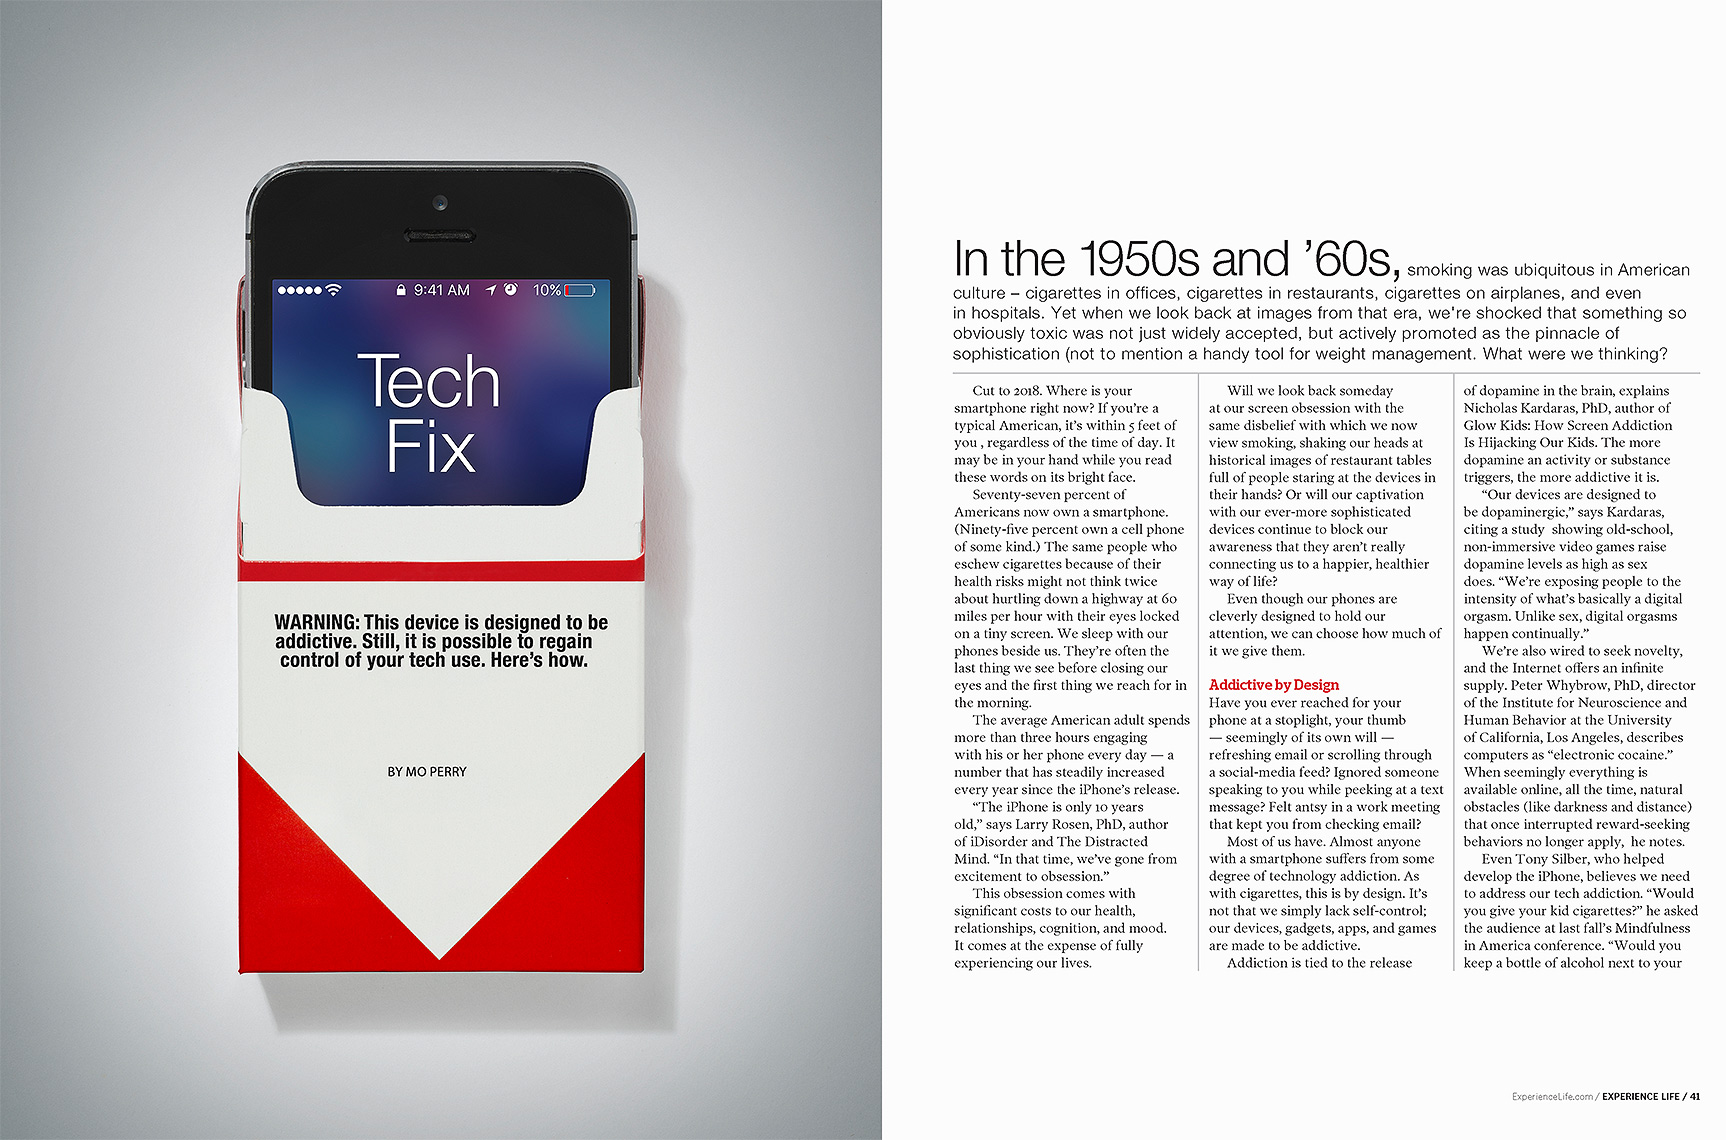 Addictive smart phone photo-illustration by John Kuczala